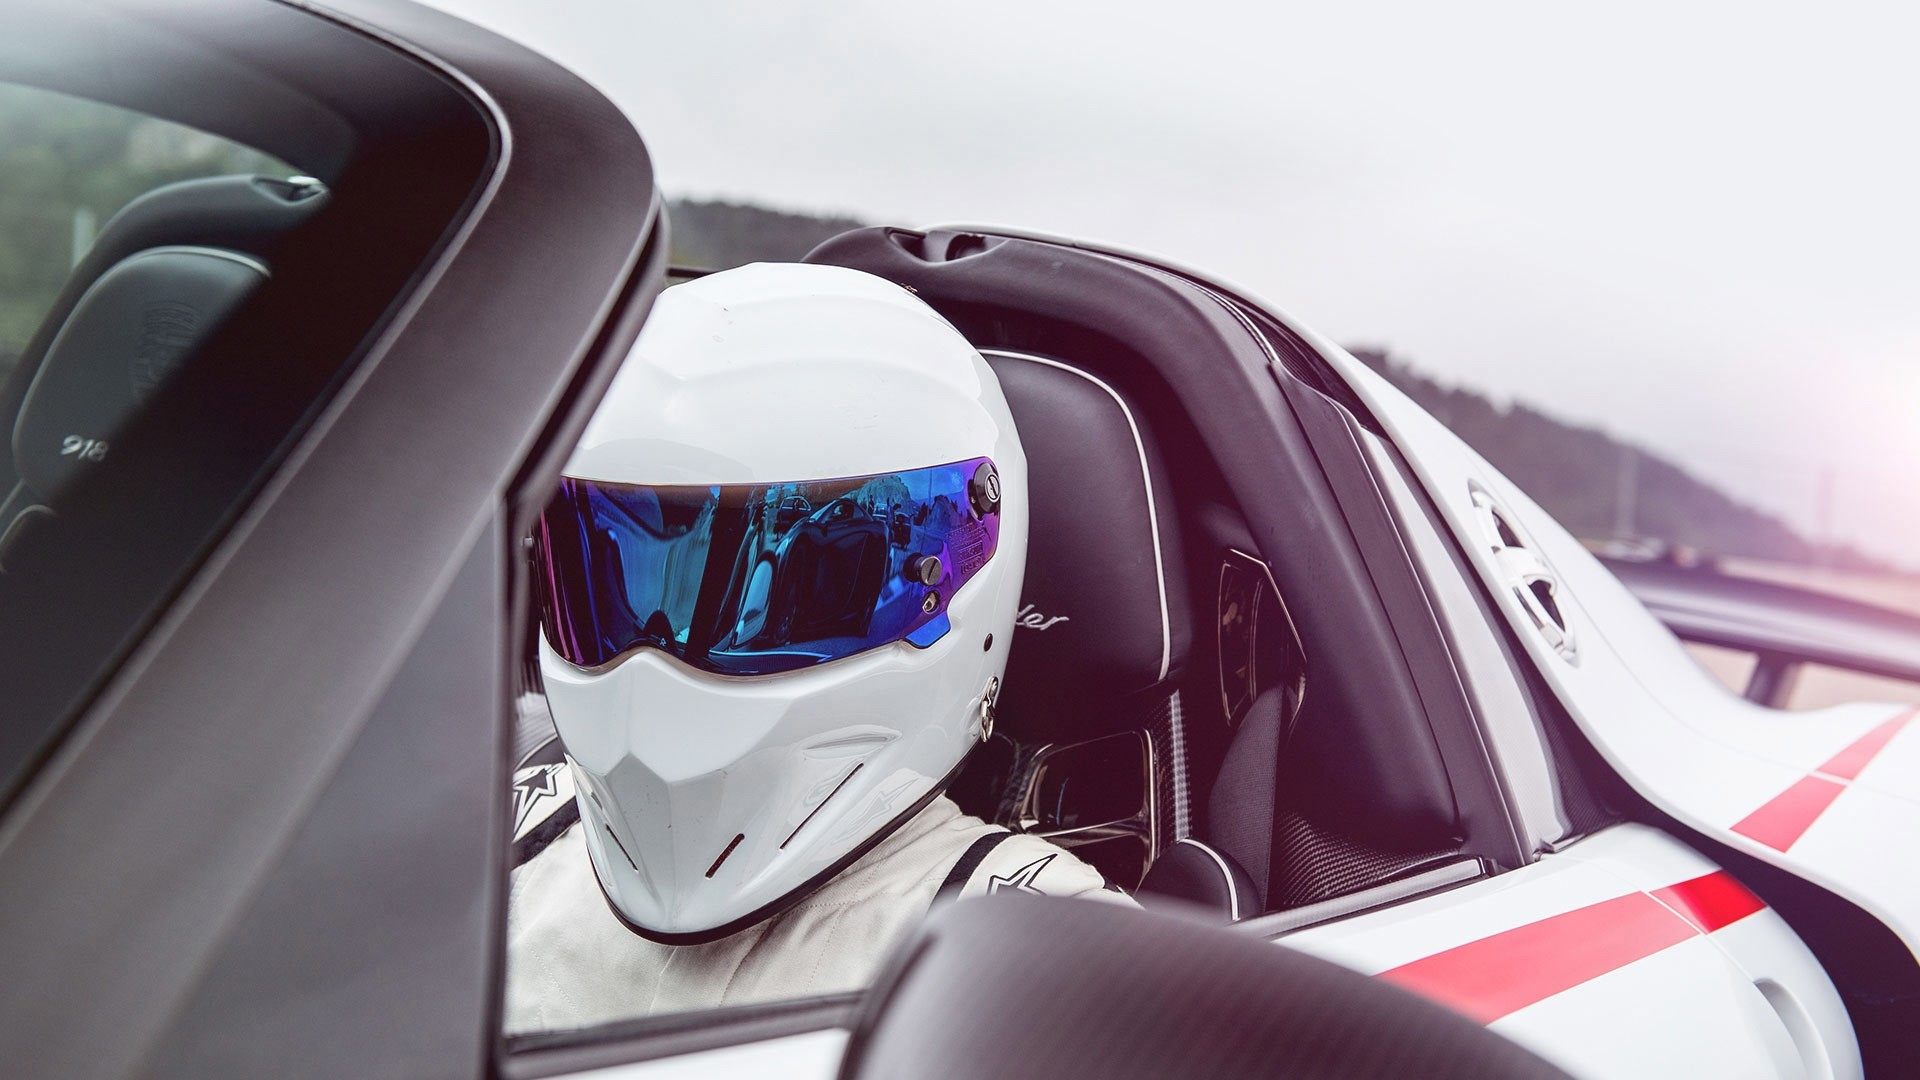 1920x1080 Men The Stig Helmet Sports Car Porsche Reflection Top Gear Porsche 918  Spyder Wallpaper